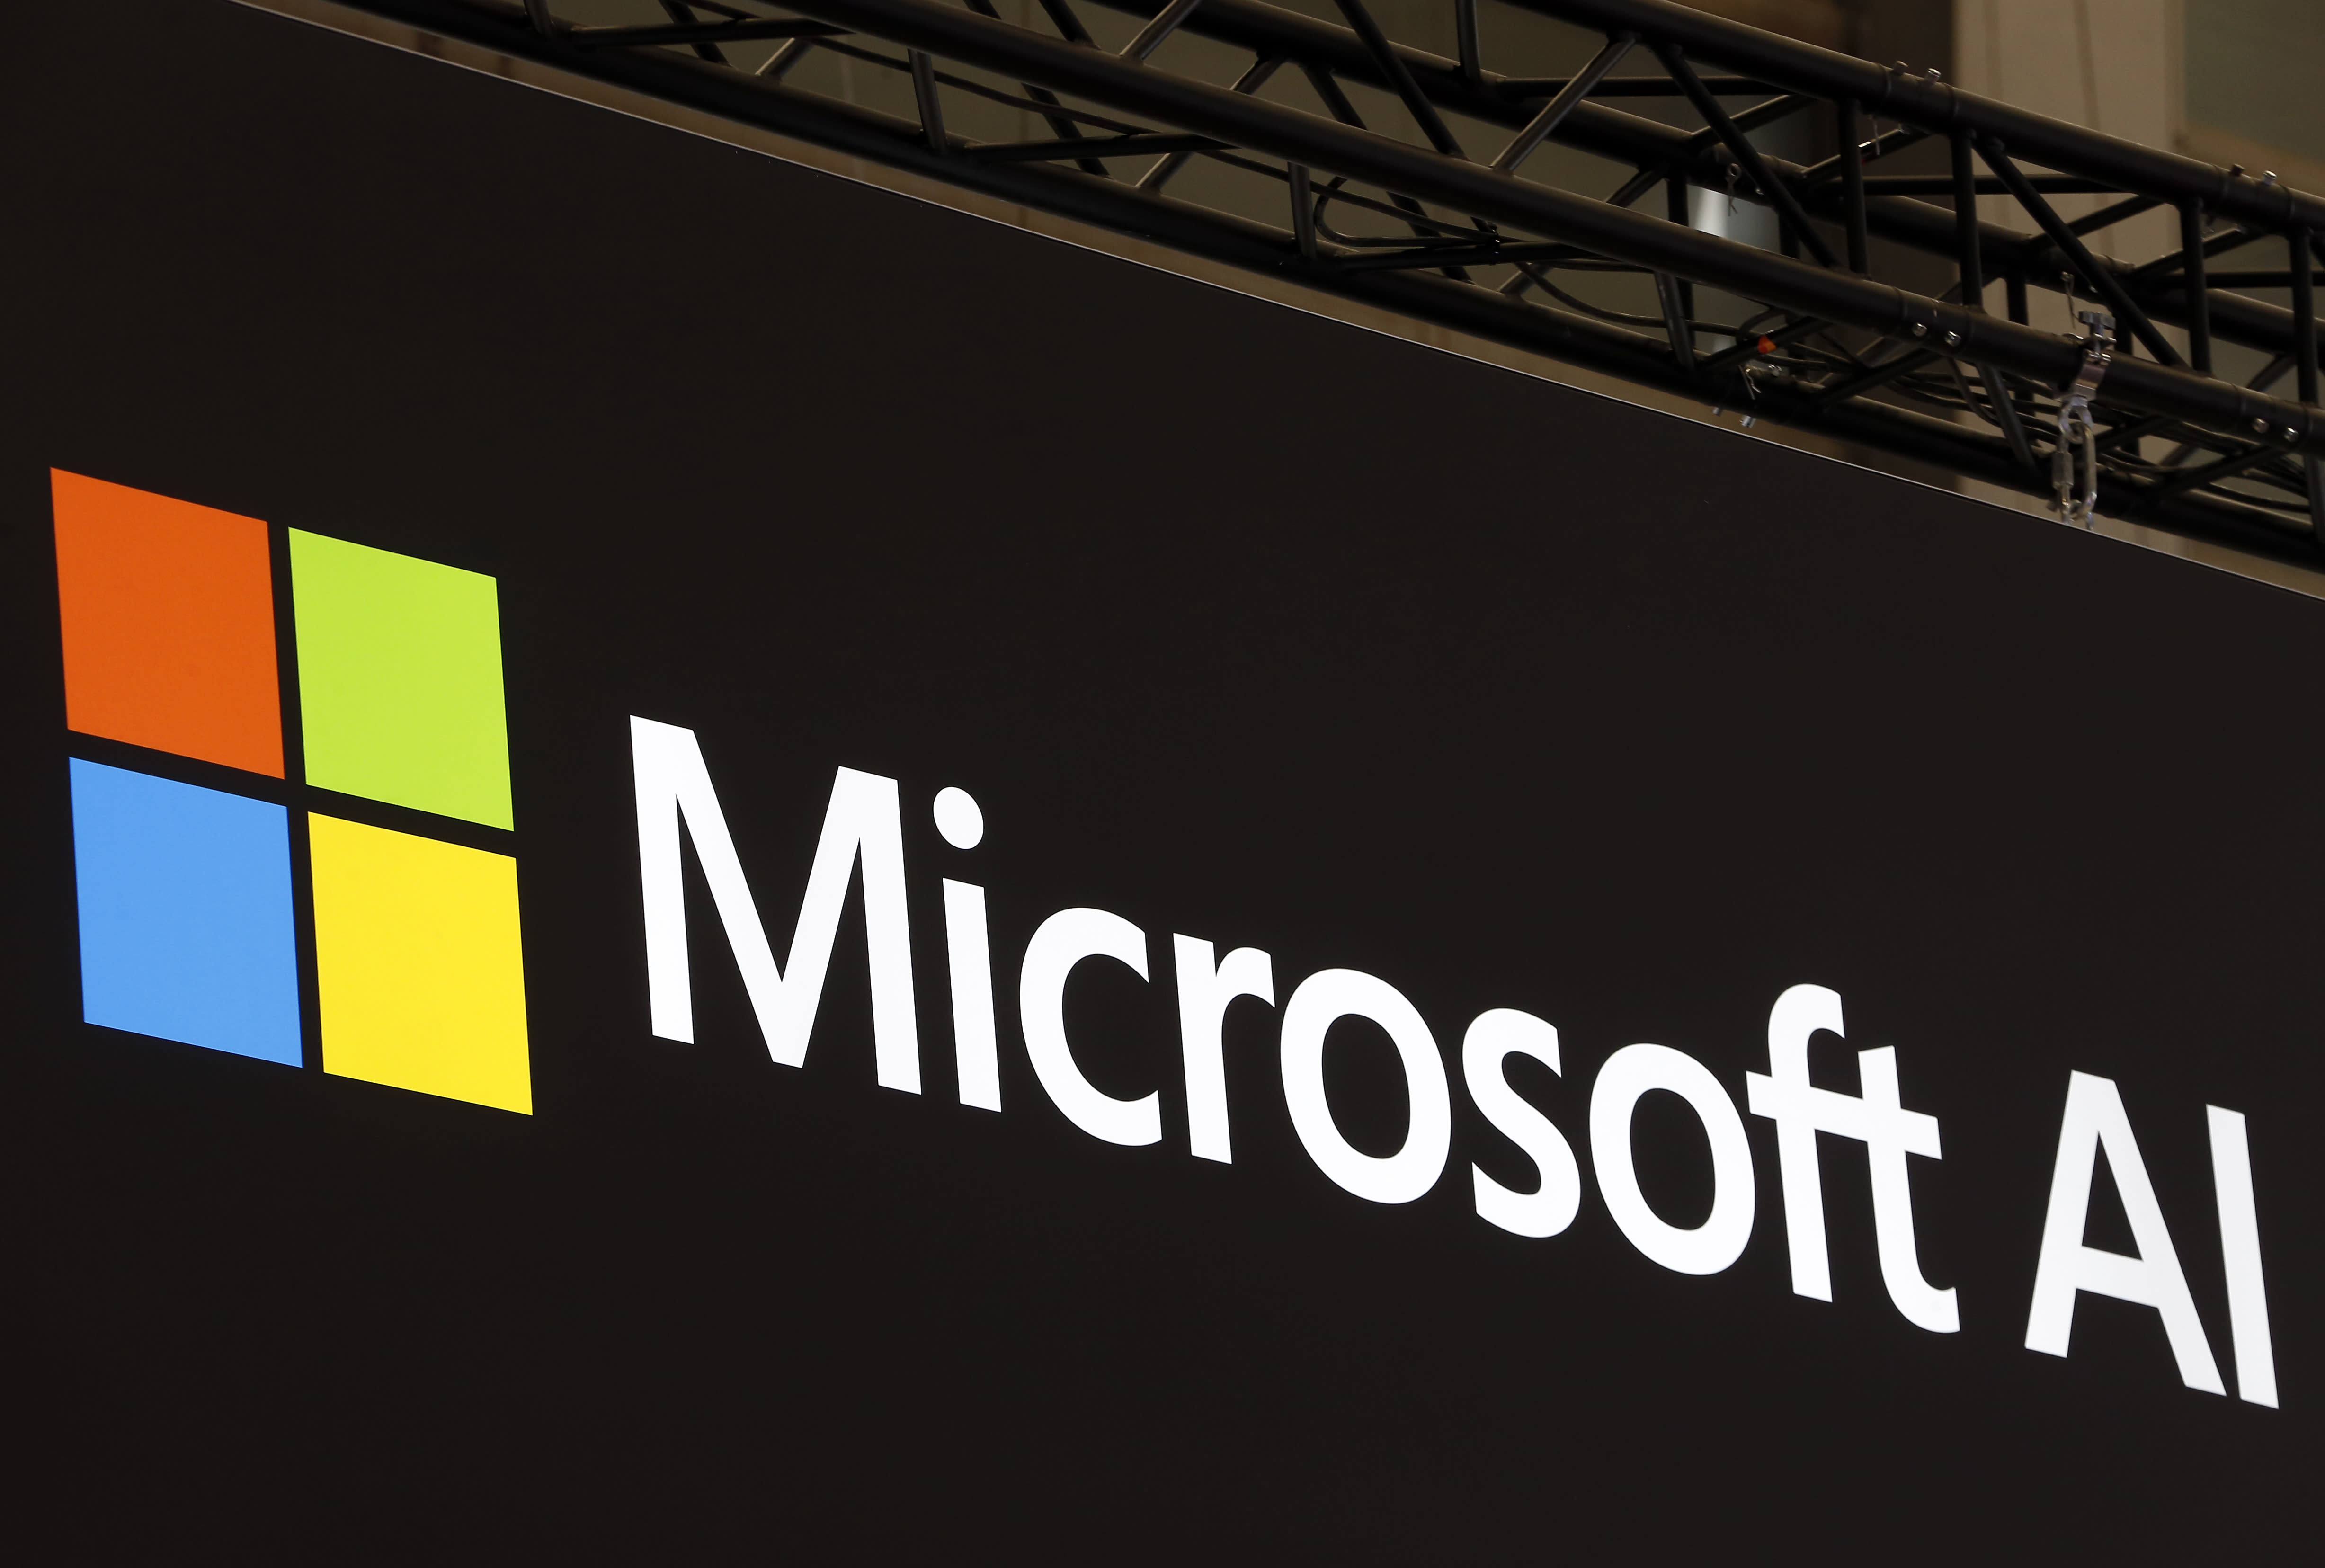 Microsoft invests $1 billion in artificial intelligence project co-founded by Elon Musk